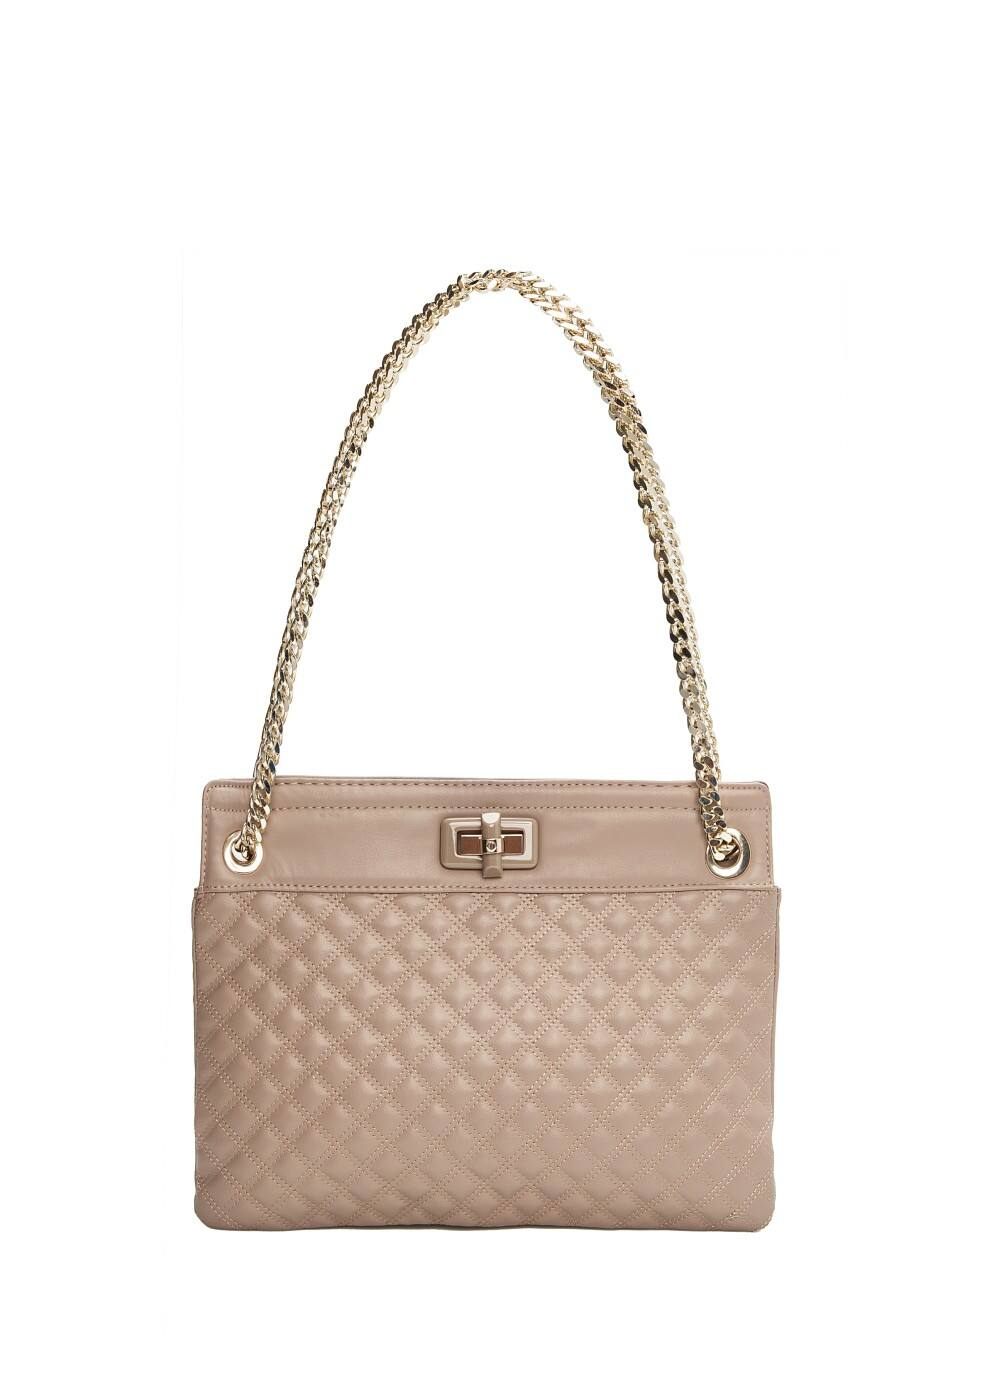 Chain quilted bag